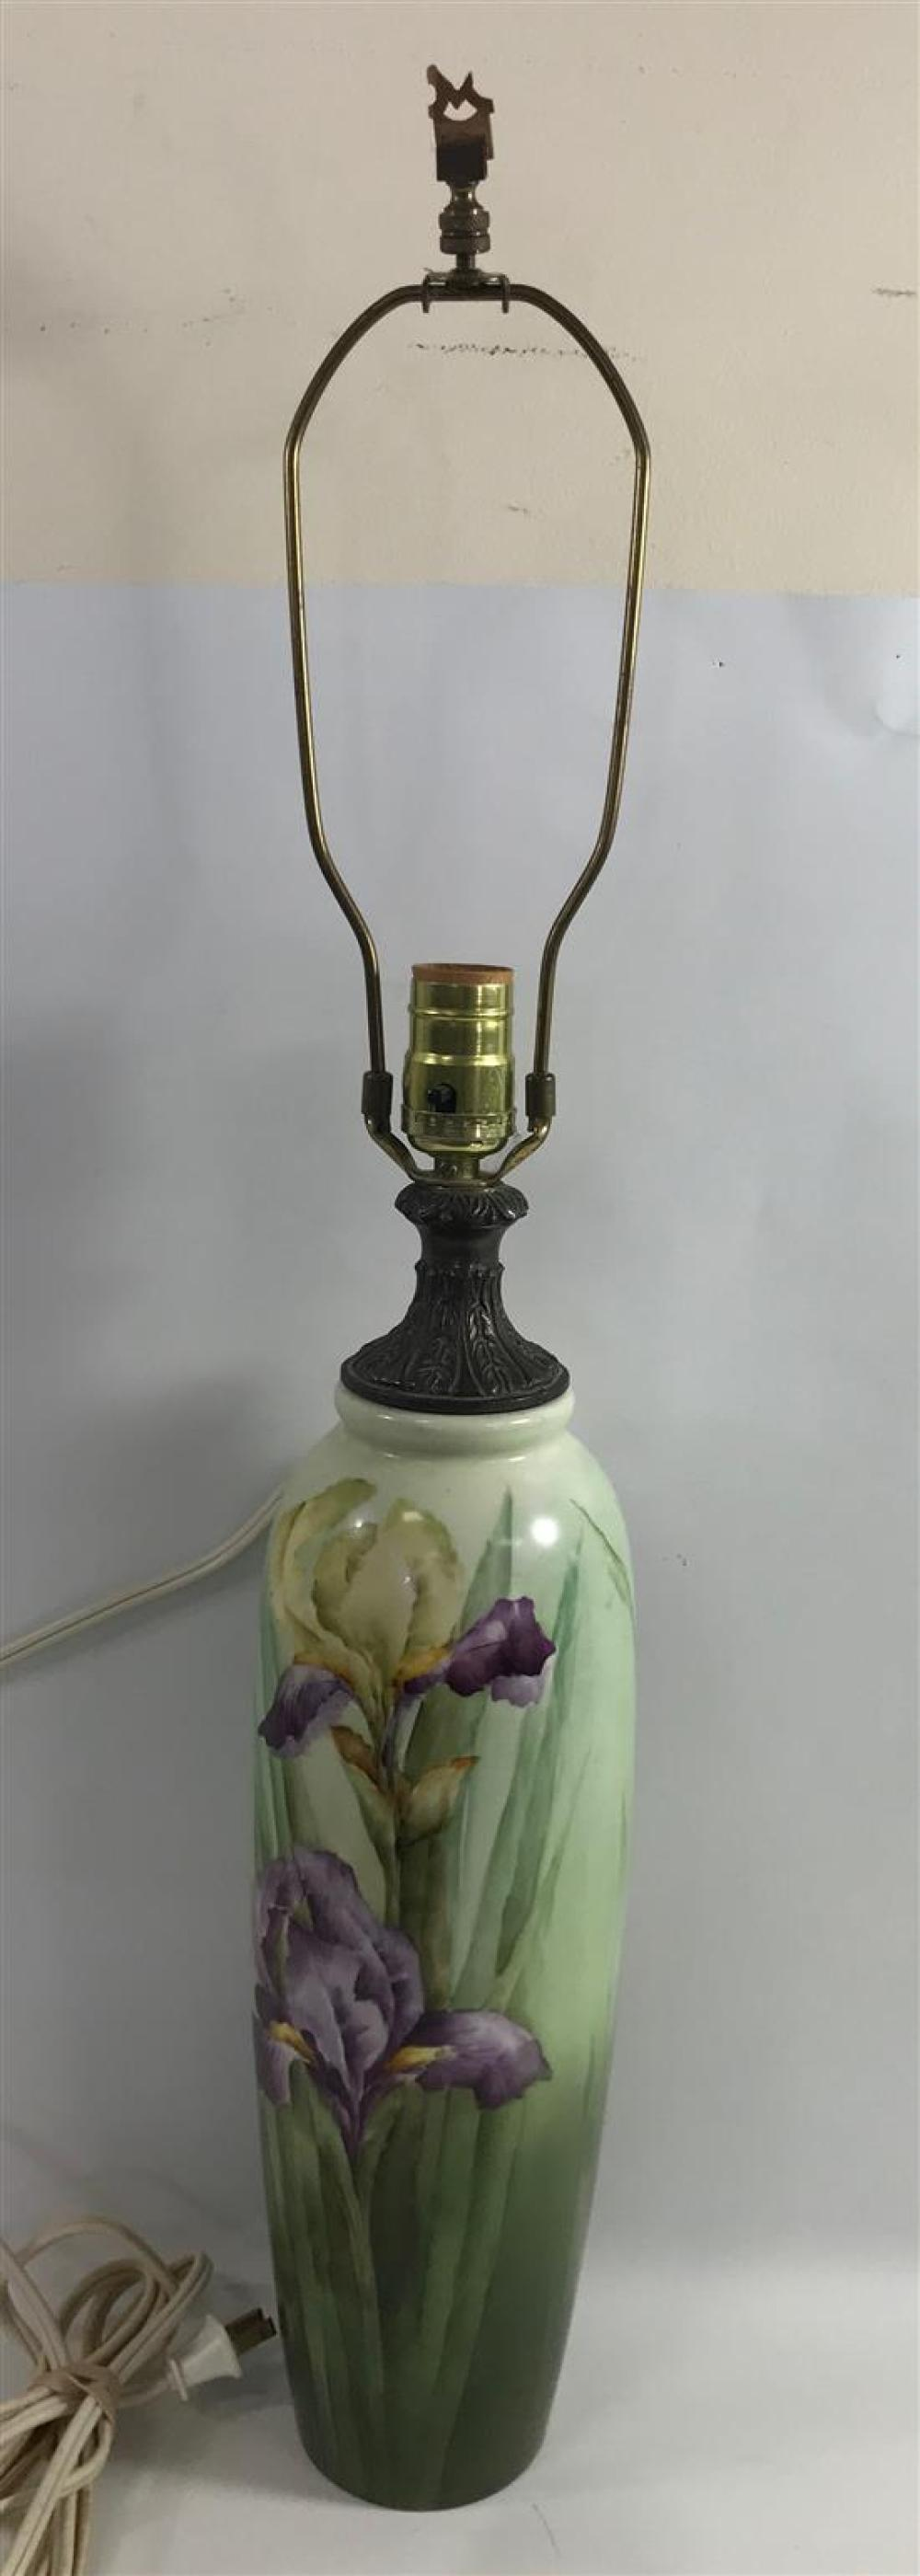 """BELLEEK WILLETS PORCELAIN VASE WITH IRIS MOTIF FITTED AS A LAMP, 30"""" H OVERALL"""